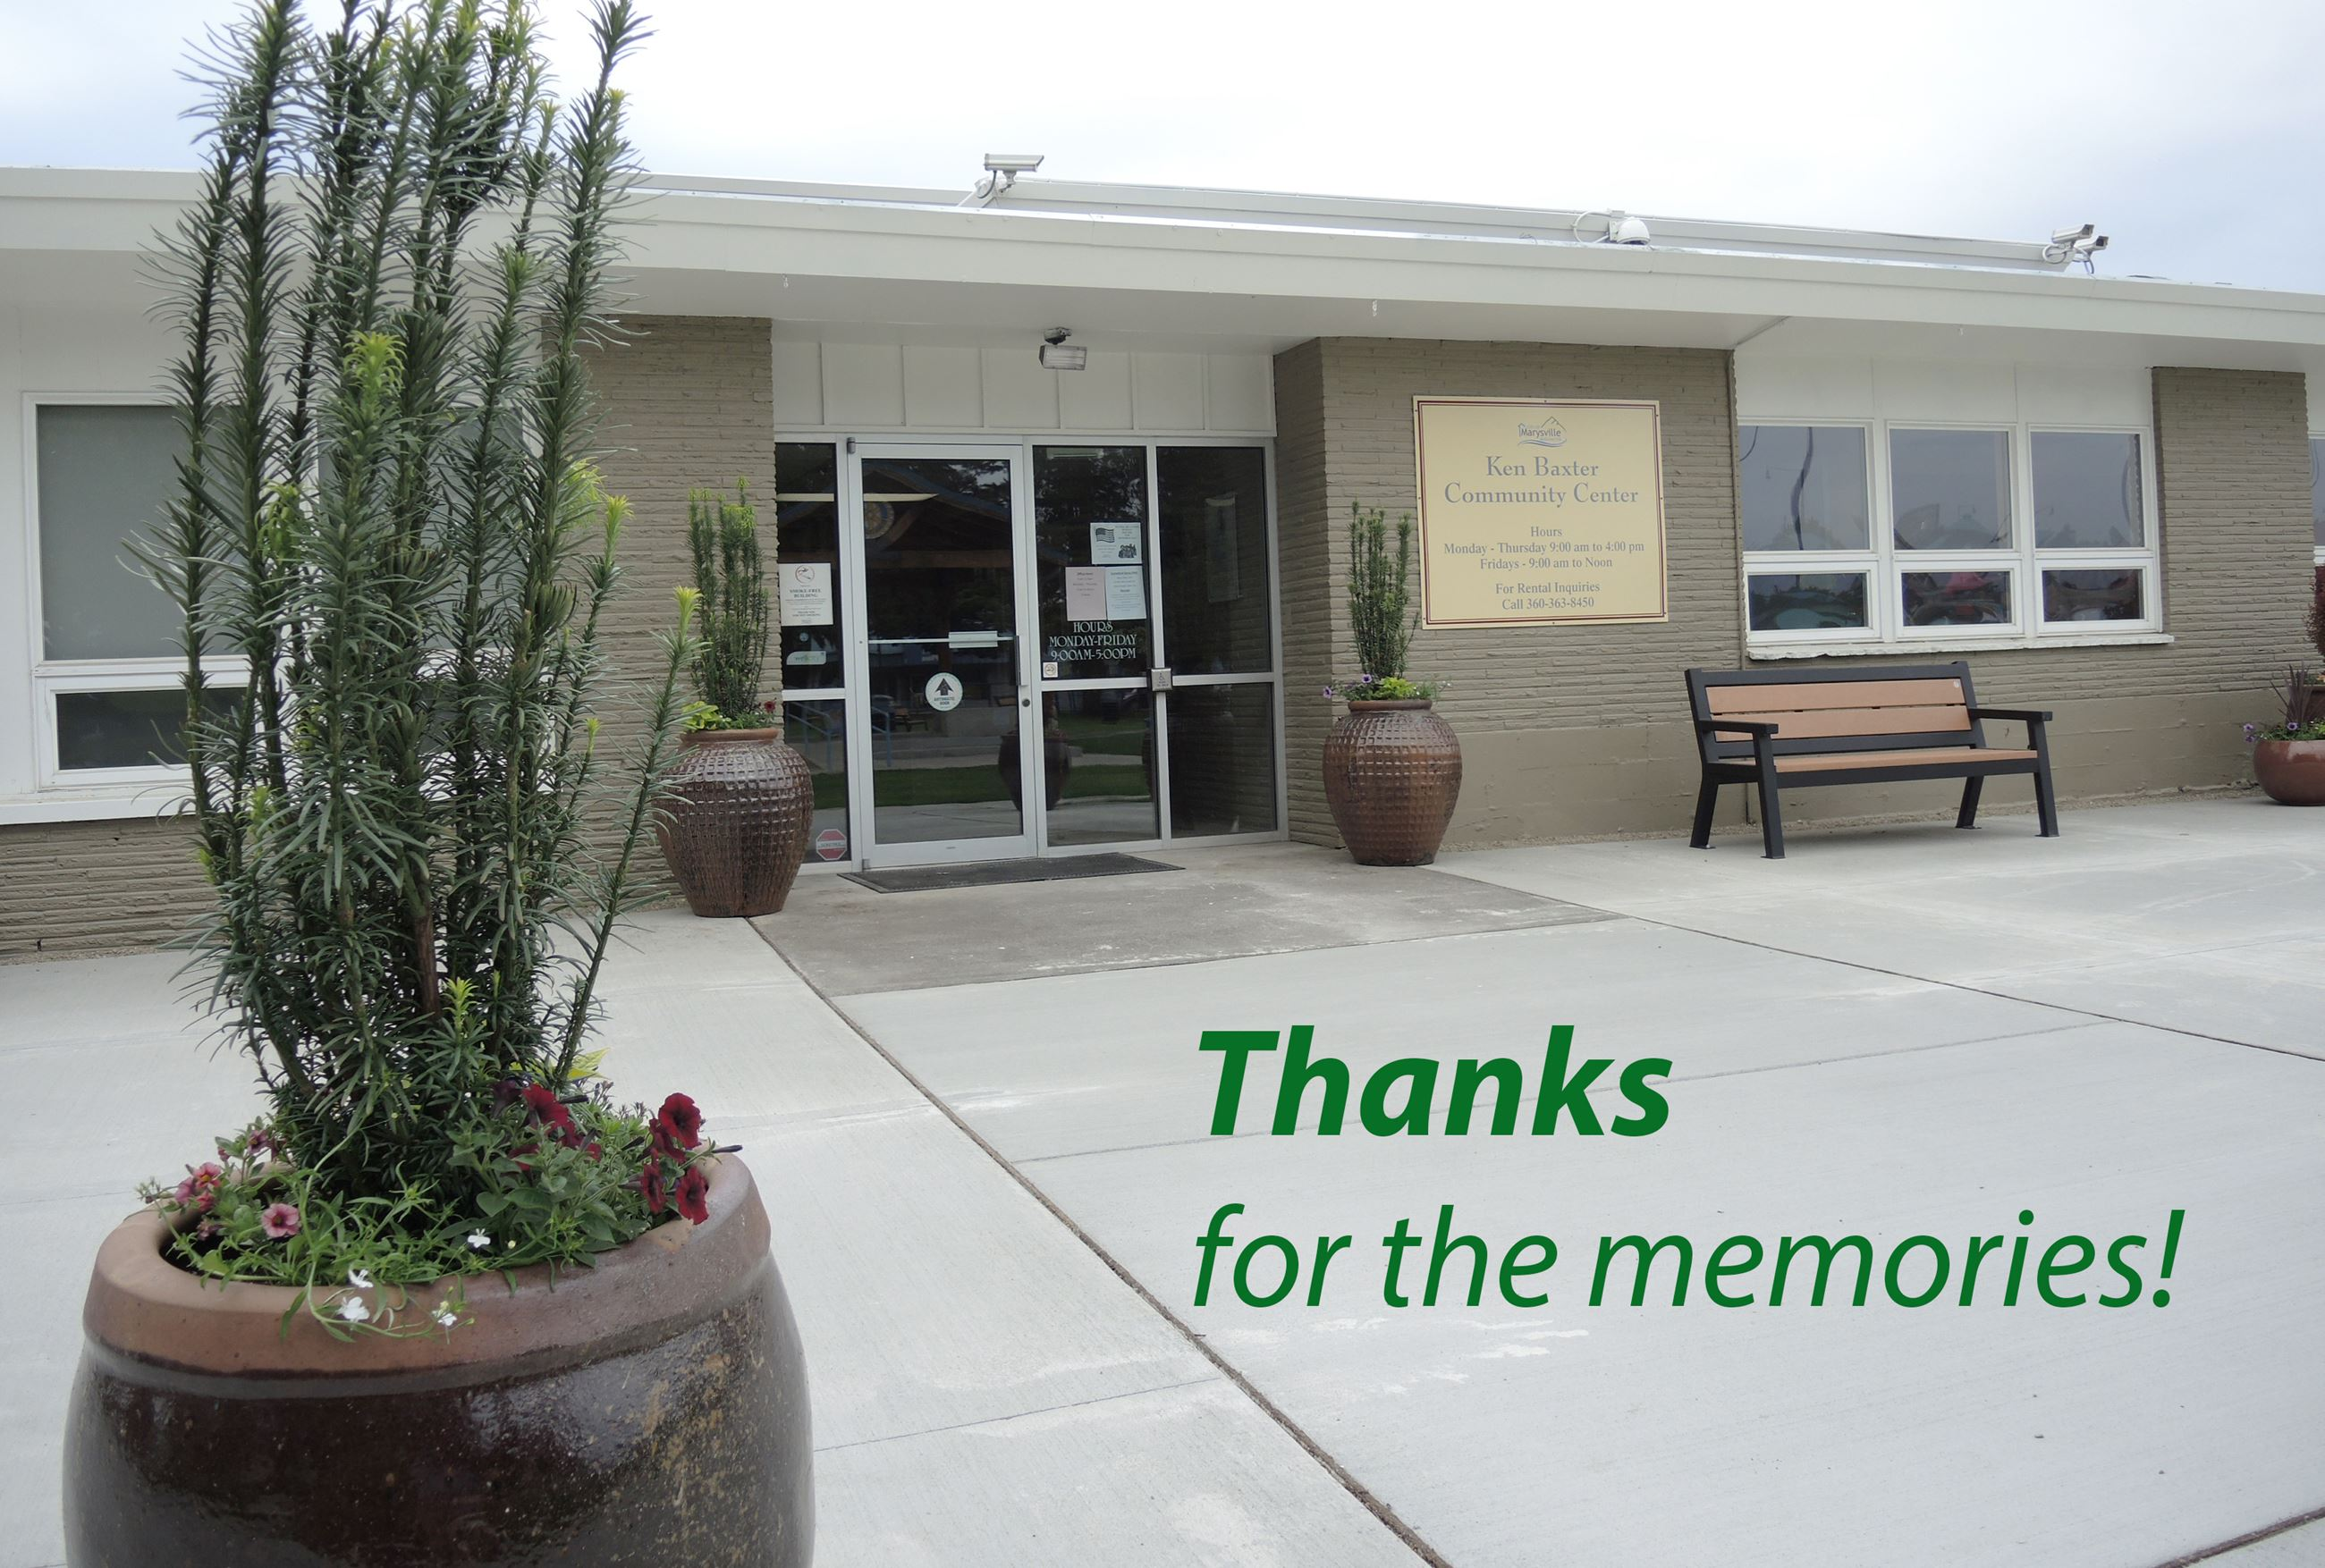 Ken Baxter Community Center: Thanks for the memories!